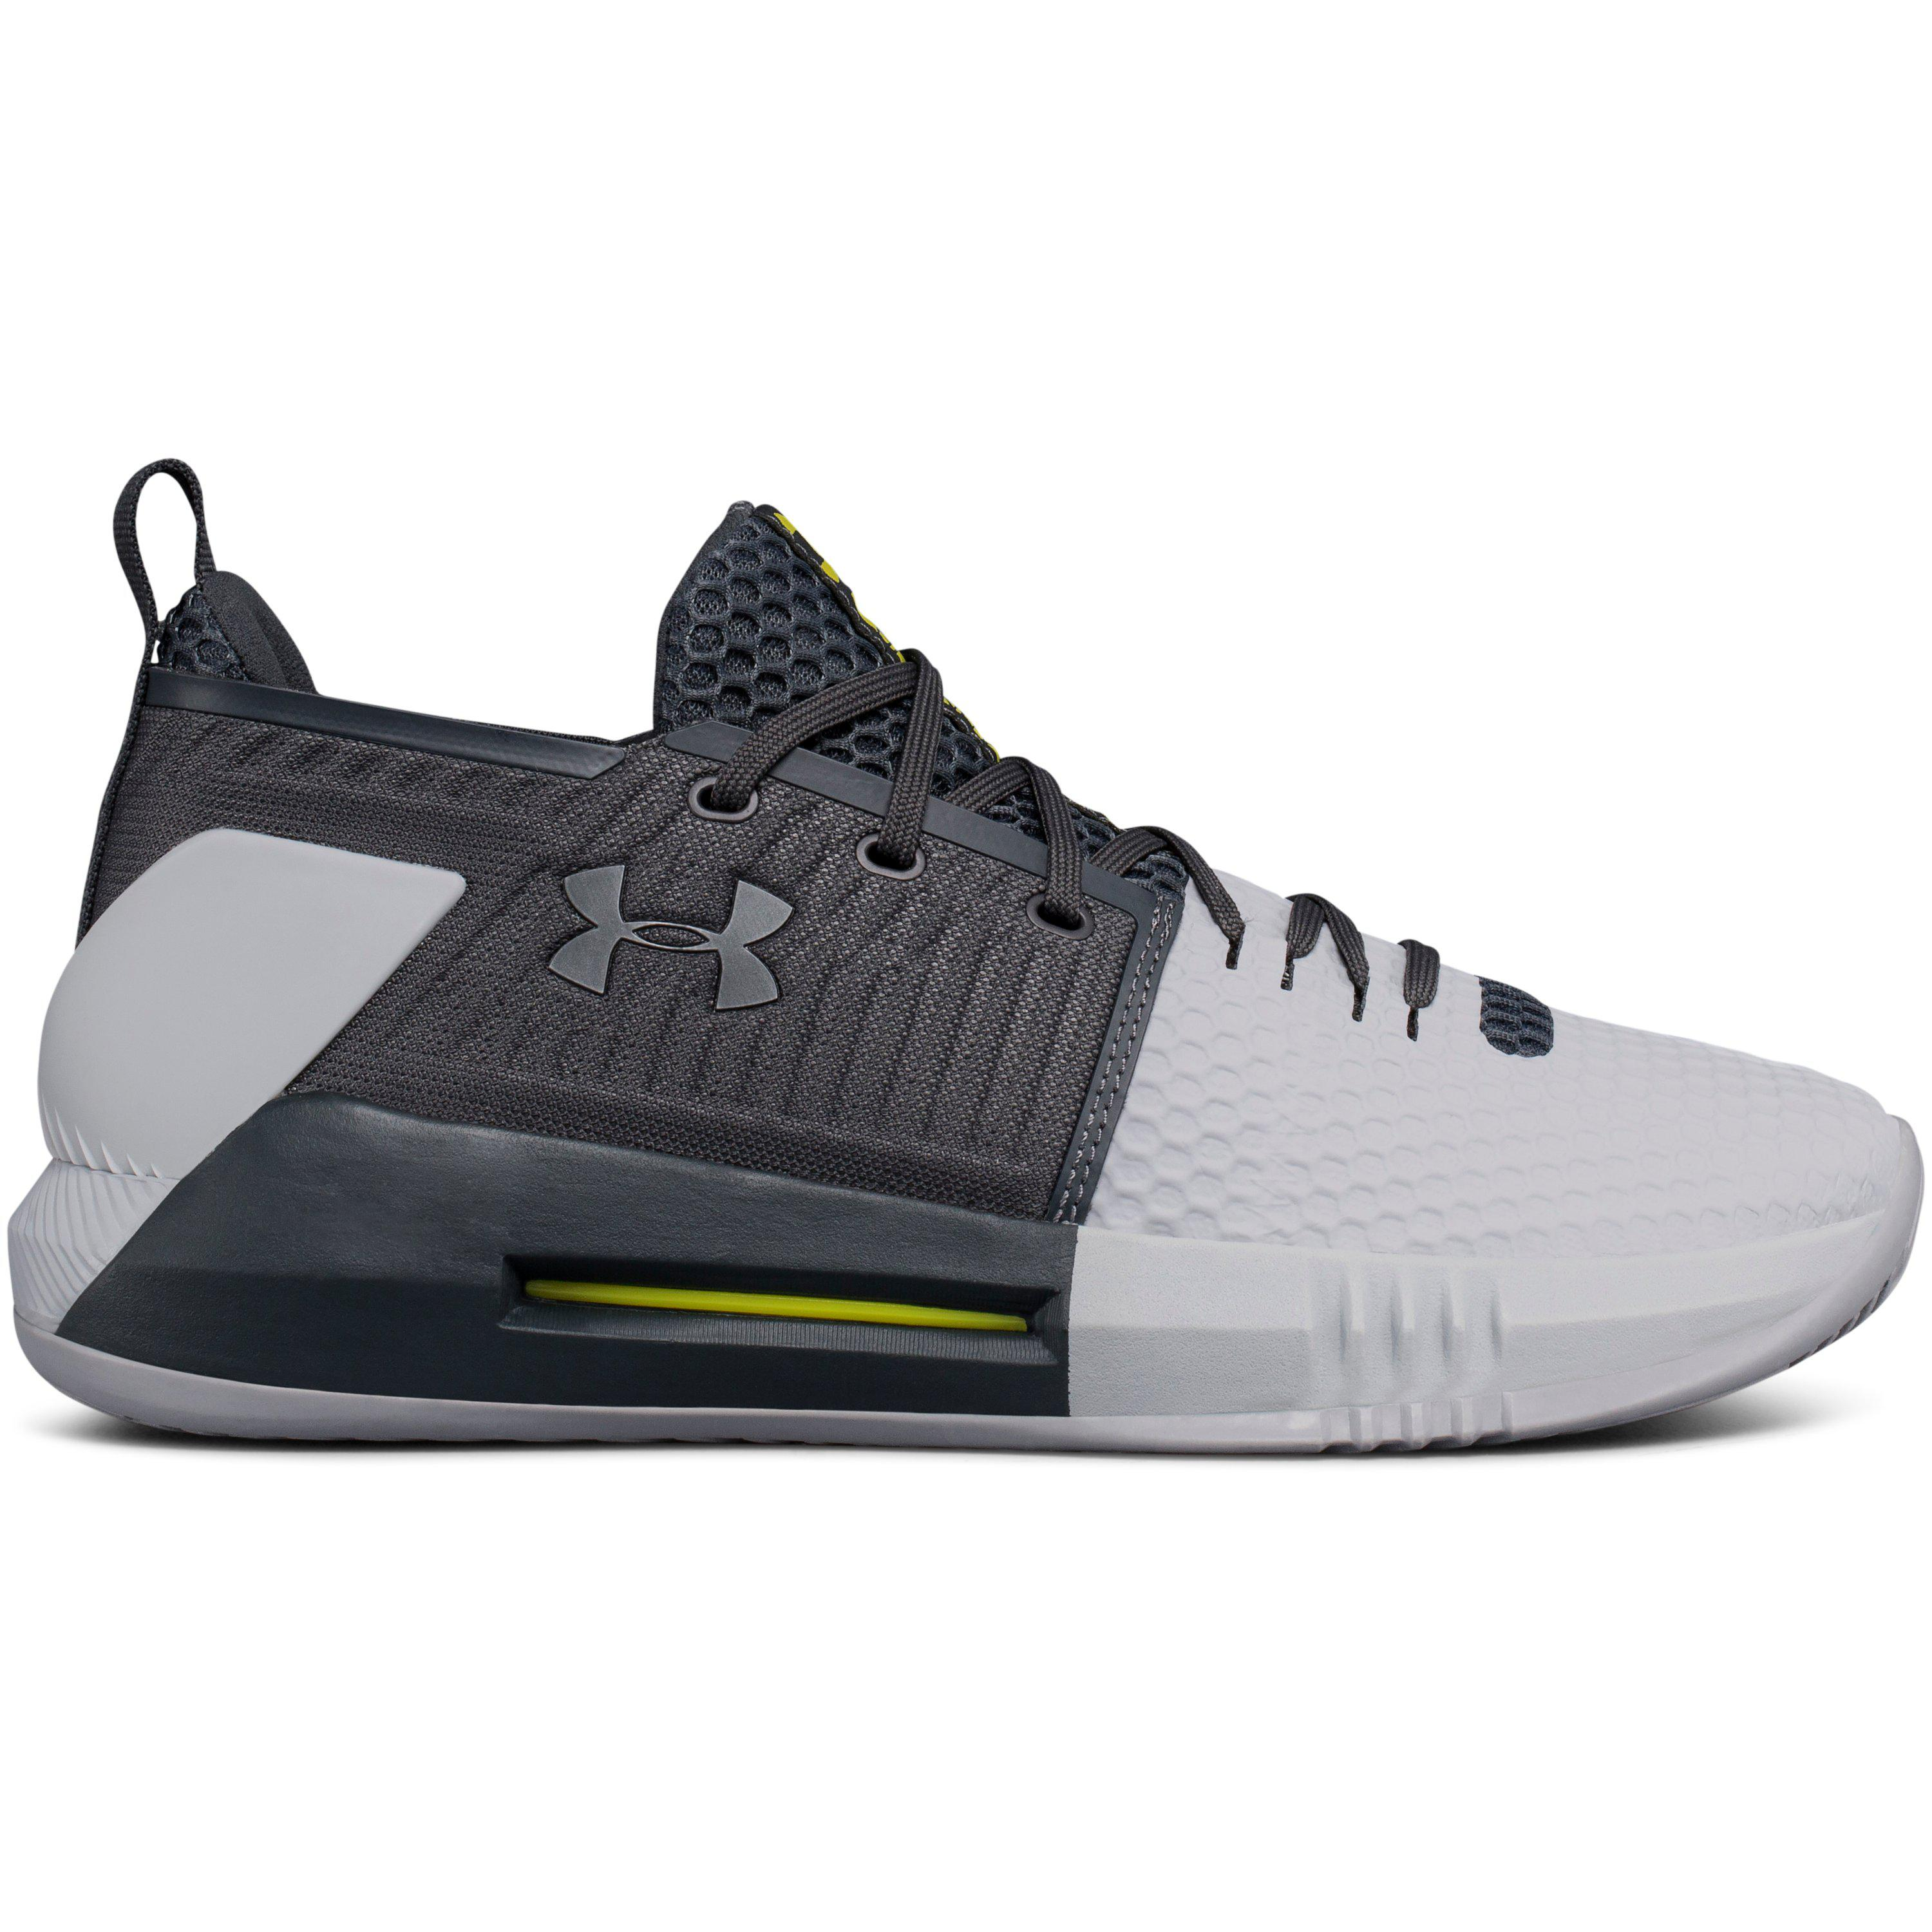 Mens Ua Drive 4 Low Basketball Shoes Under Armour Shopping Online Cheap Online Low Shipping Sale Online Discount Clearance Outlet 2018 HW04B0wi